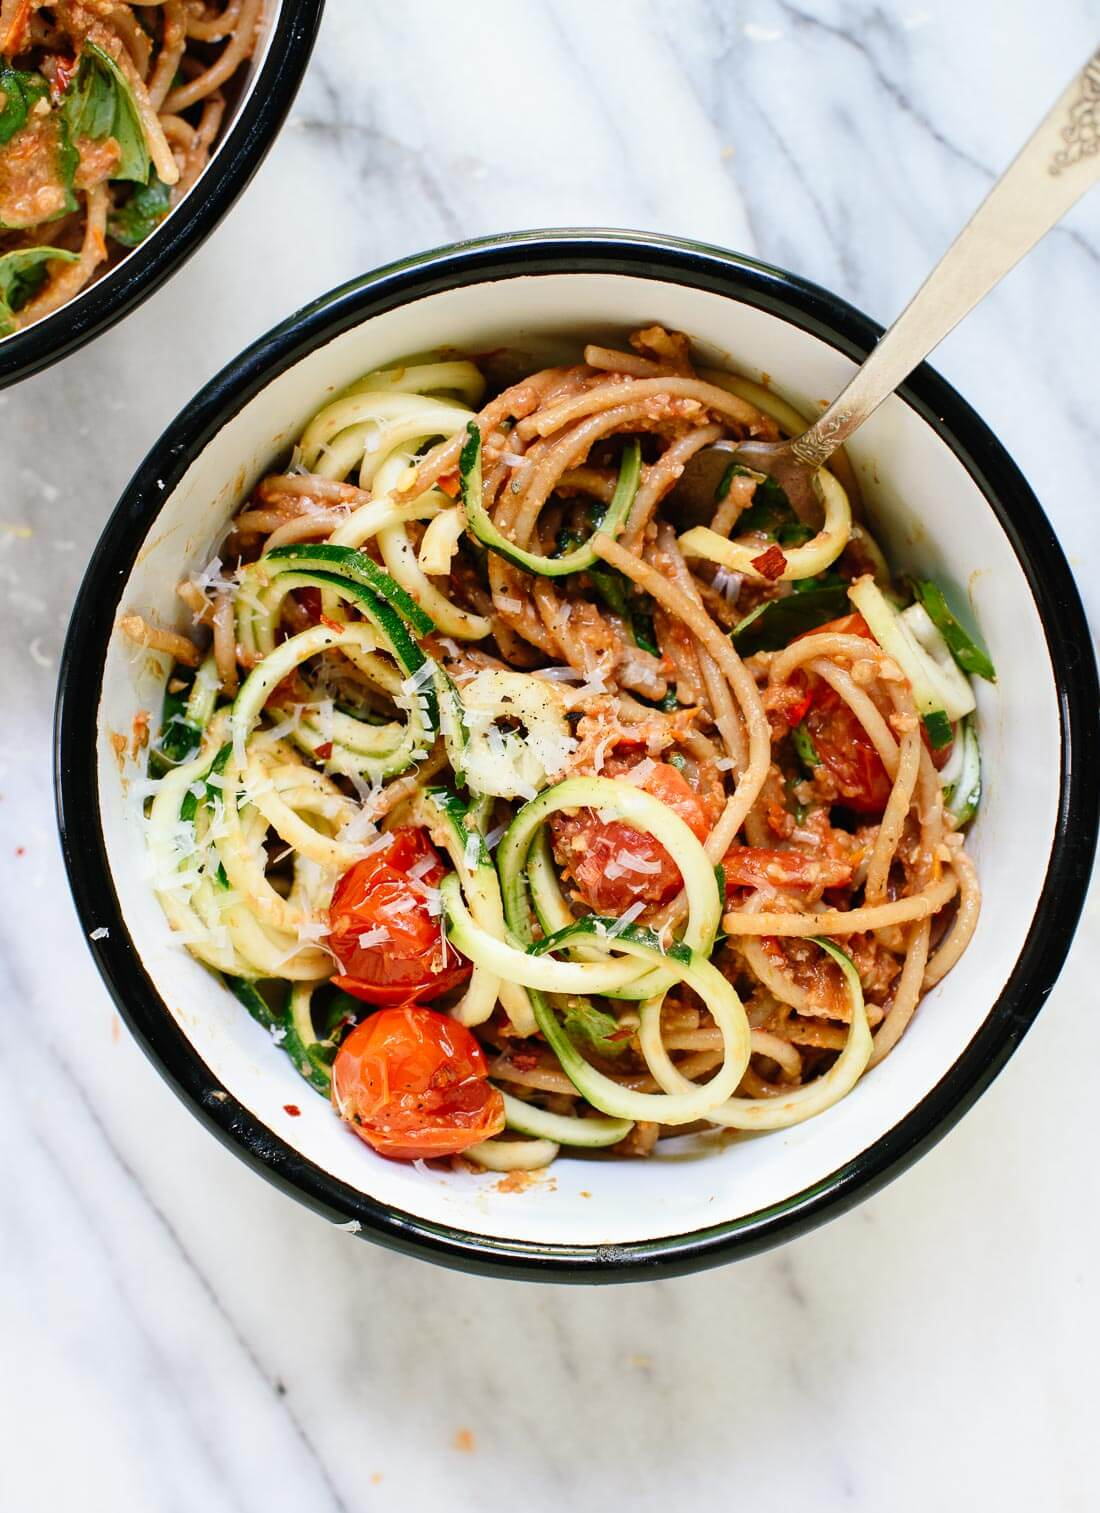 This fresh summer recipe features burst cherry tomatoes, cherry tomato and sun-dried tomato pesto, zucchini noodles, and spaghetti! It's light and delicious. cookieandkate.com